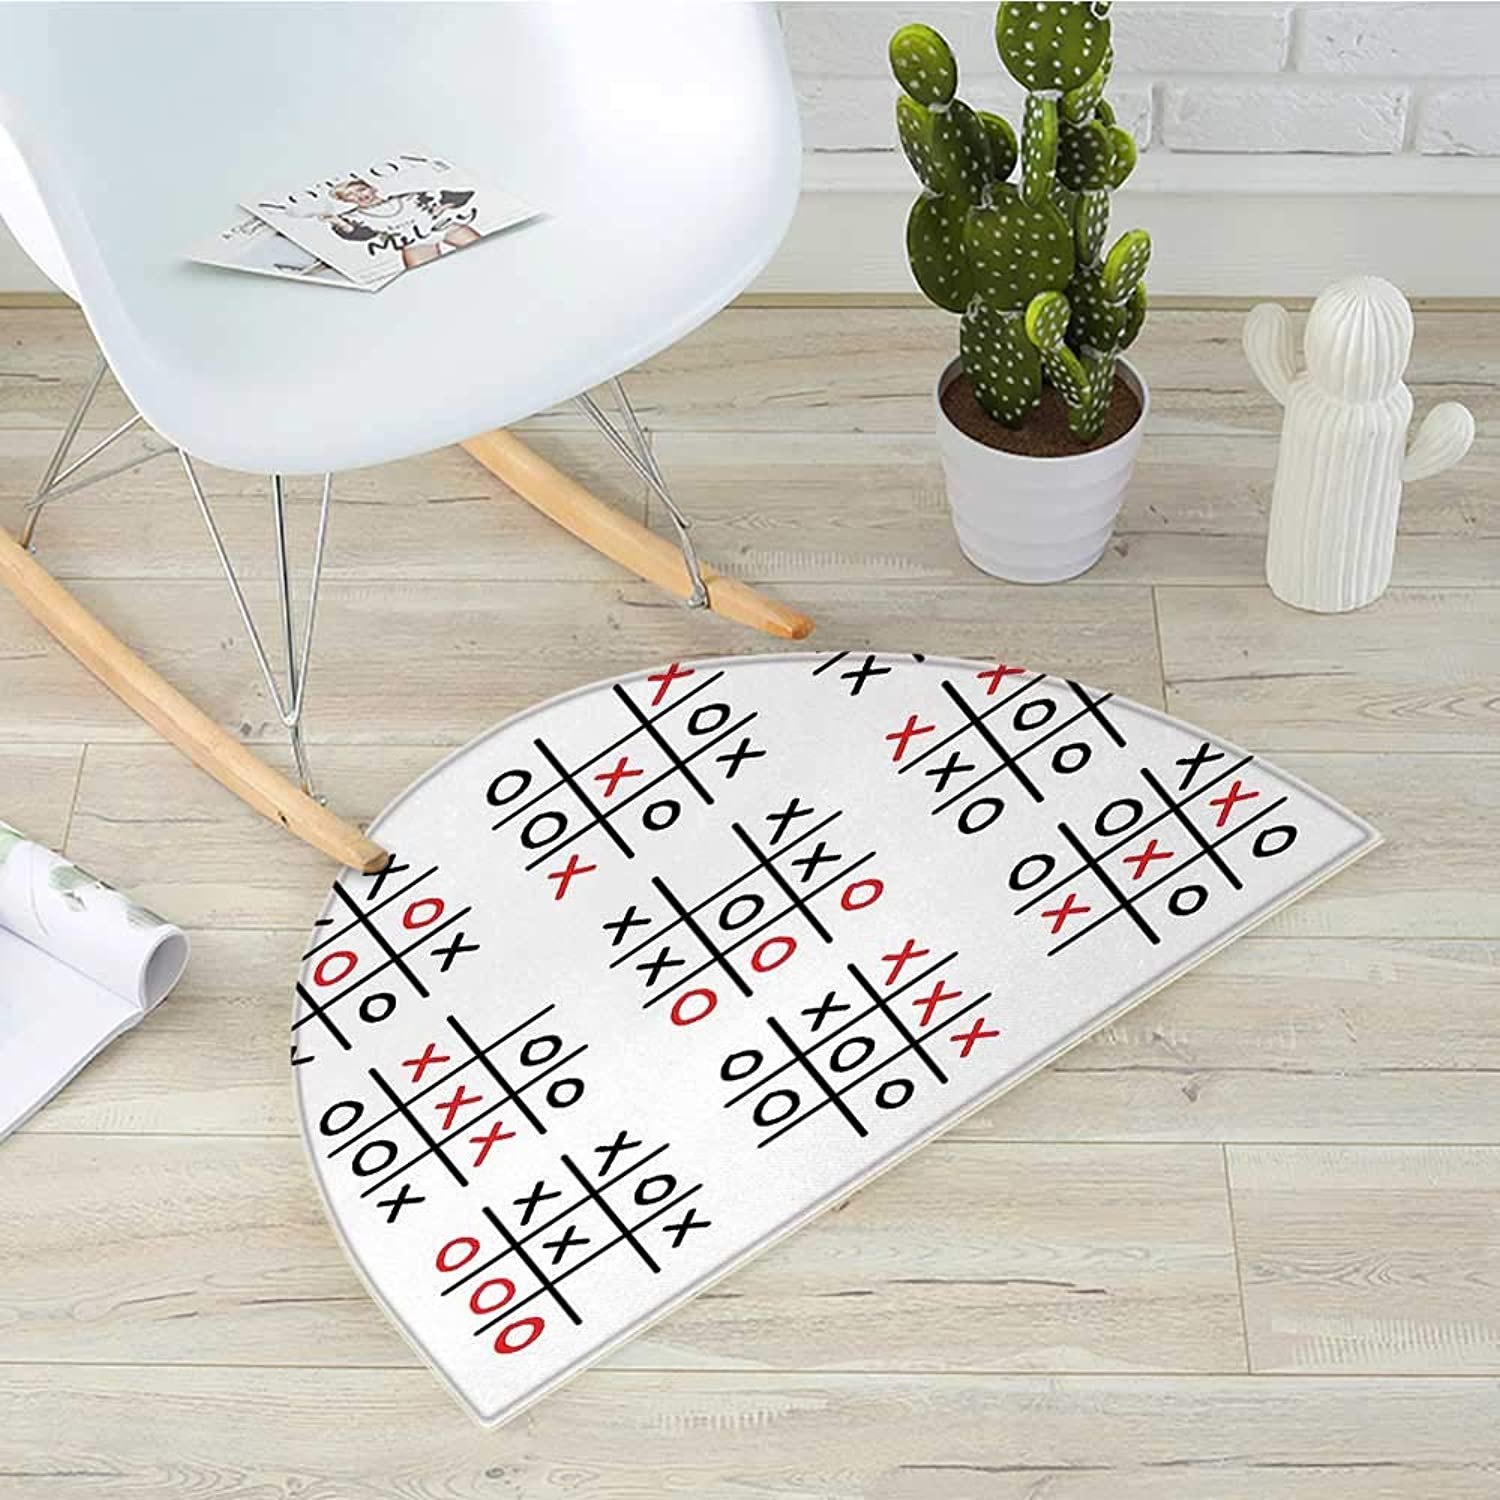 Xo Half Round Door mats Doodle Style Tic Tac Toe Game Set Table with X and O Letters Artistic Design Bathroom Mat H 51.1  xD 76.7  Black White and Red